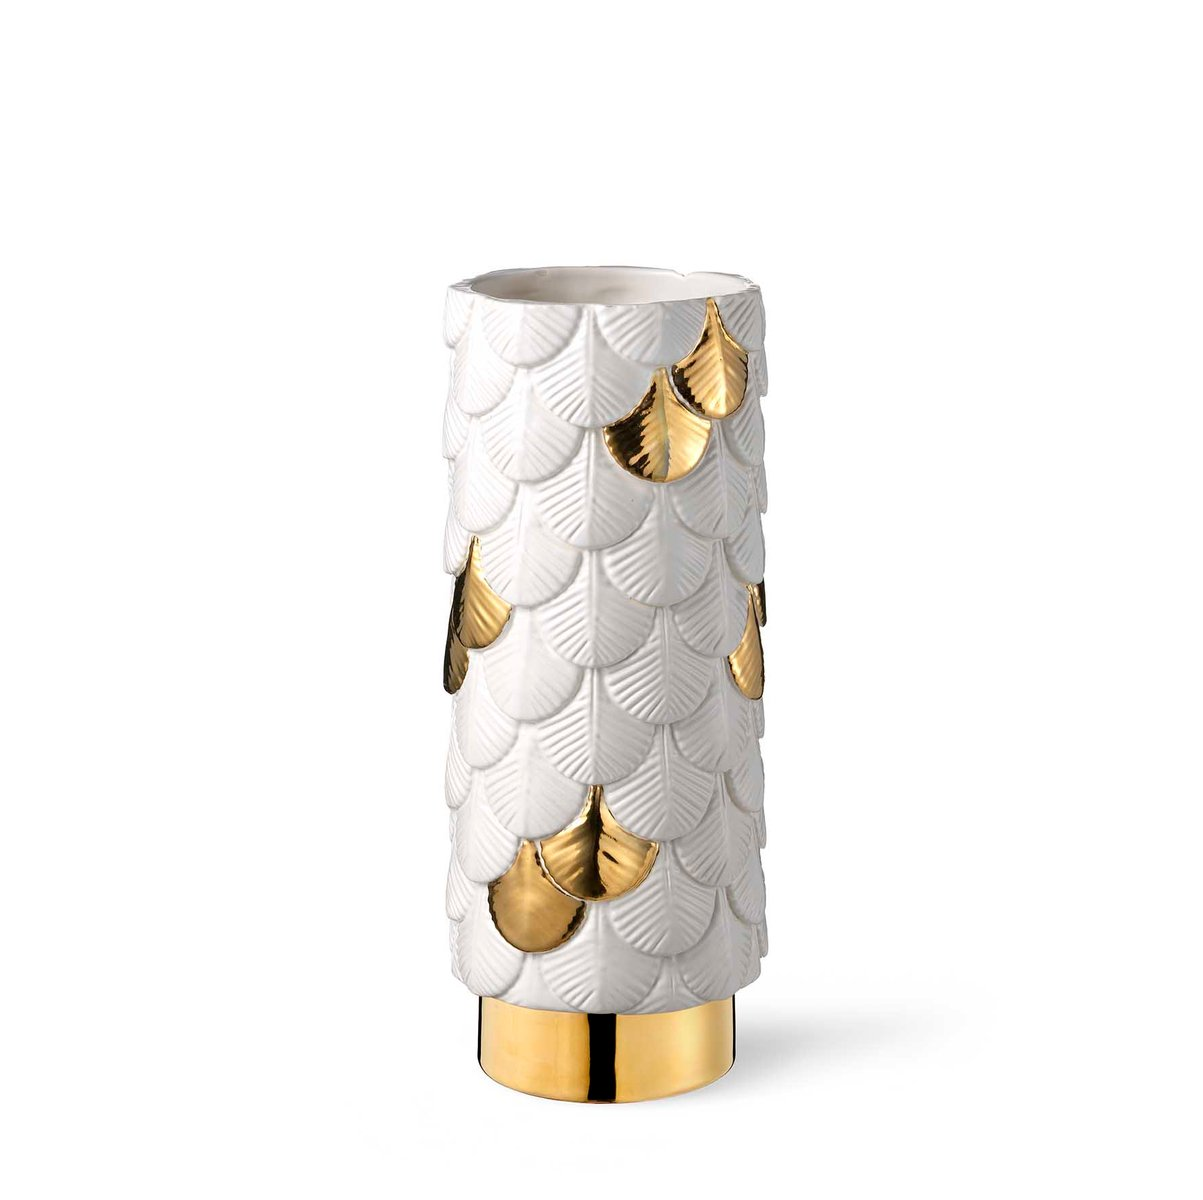 Plumage hand decorated white gold vase by cristina celestino for plumage hand decorated white gold vase by cristina celestino for botteganove reviewsmspy